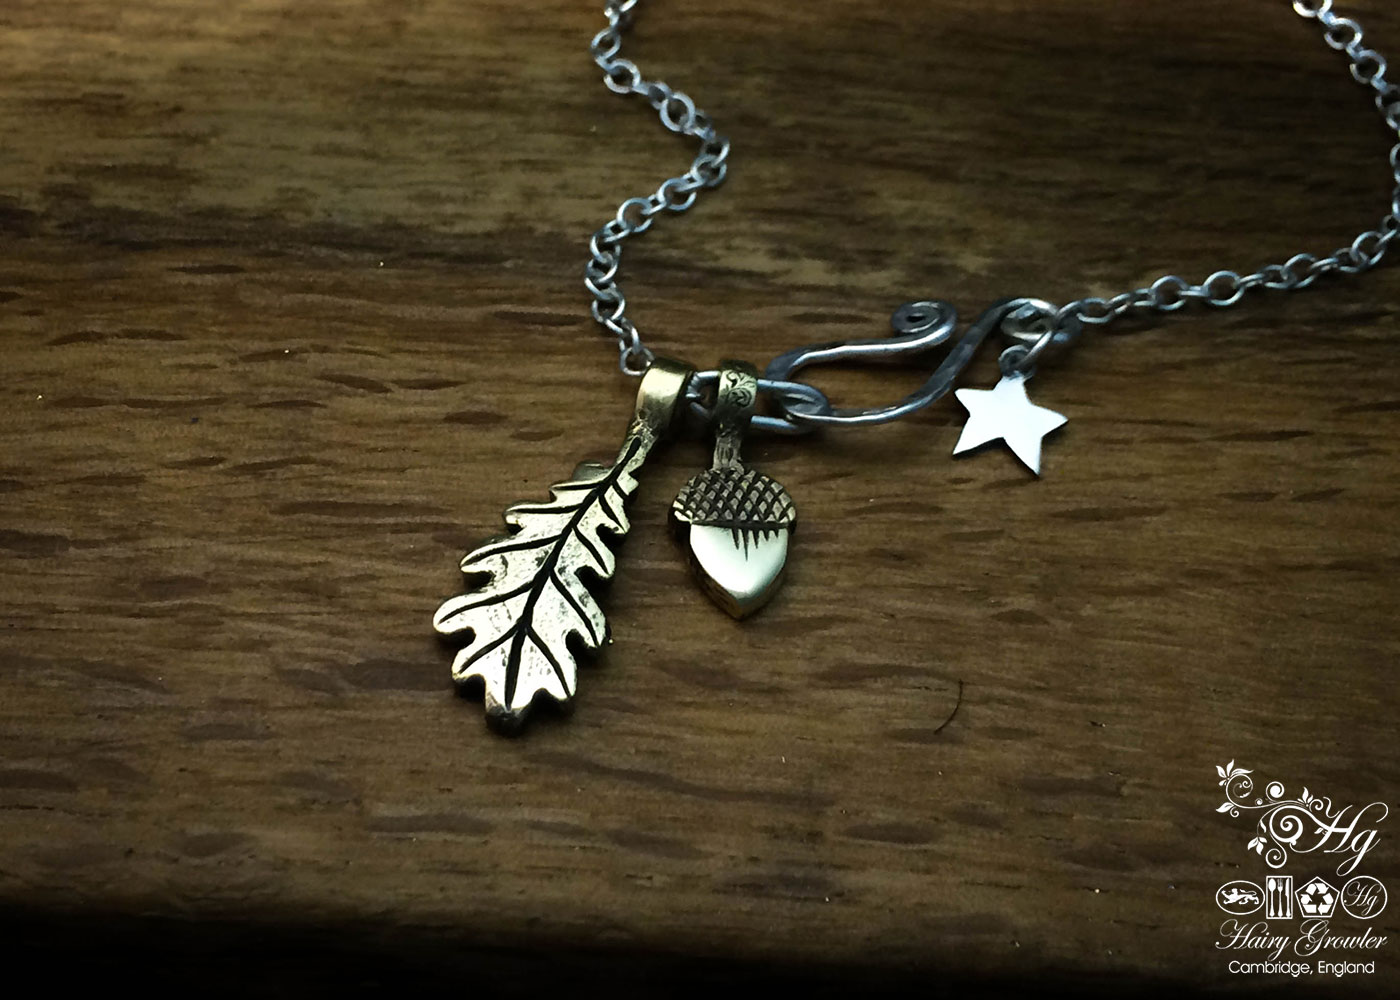 handcrafted silver oak leaf charm for a tree sculpture, necklace or bracelet